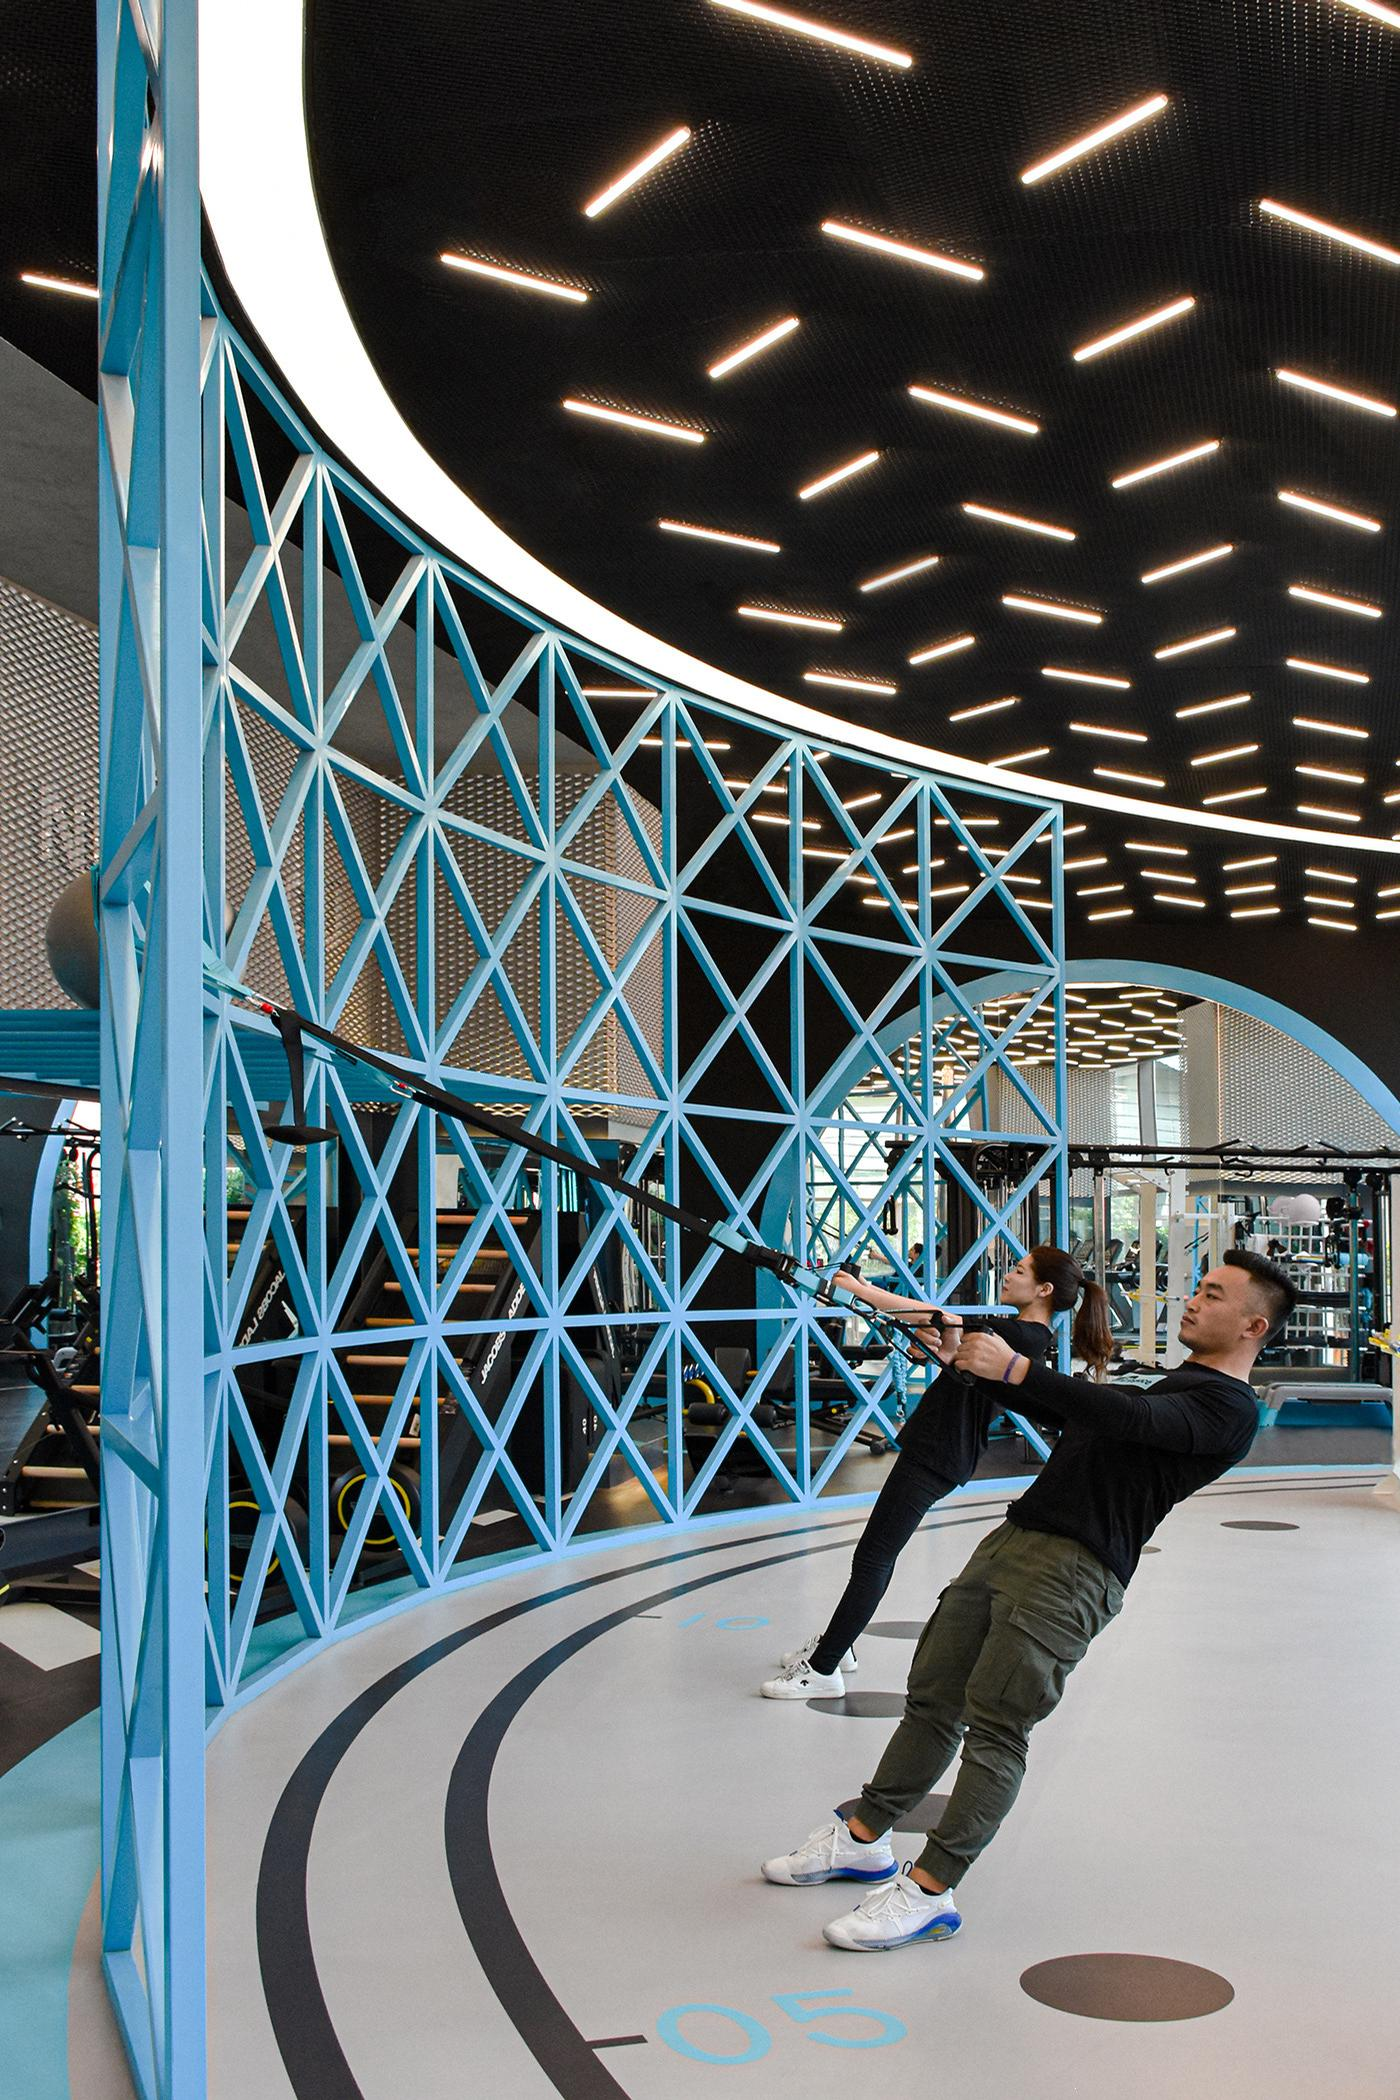 Ropes for resistance and other equipment can be attached to a curved architectural lattice structure